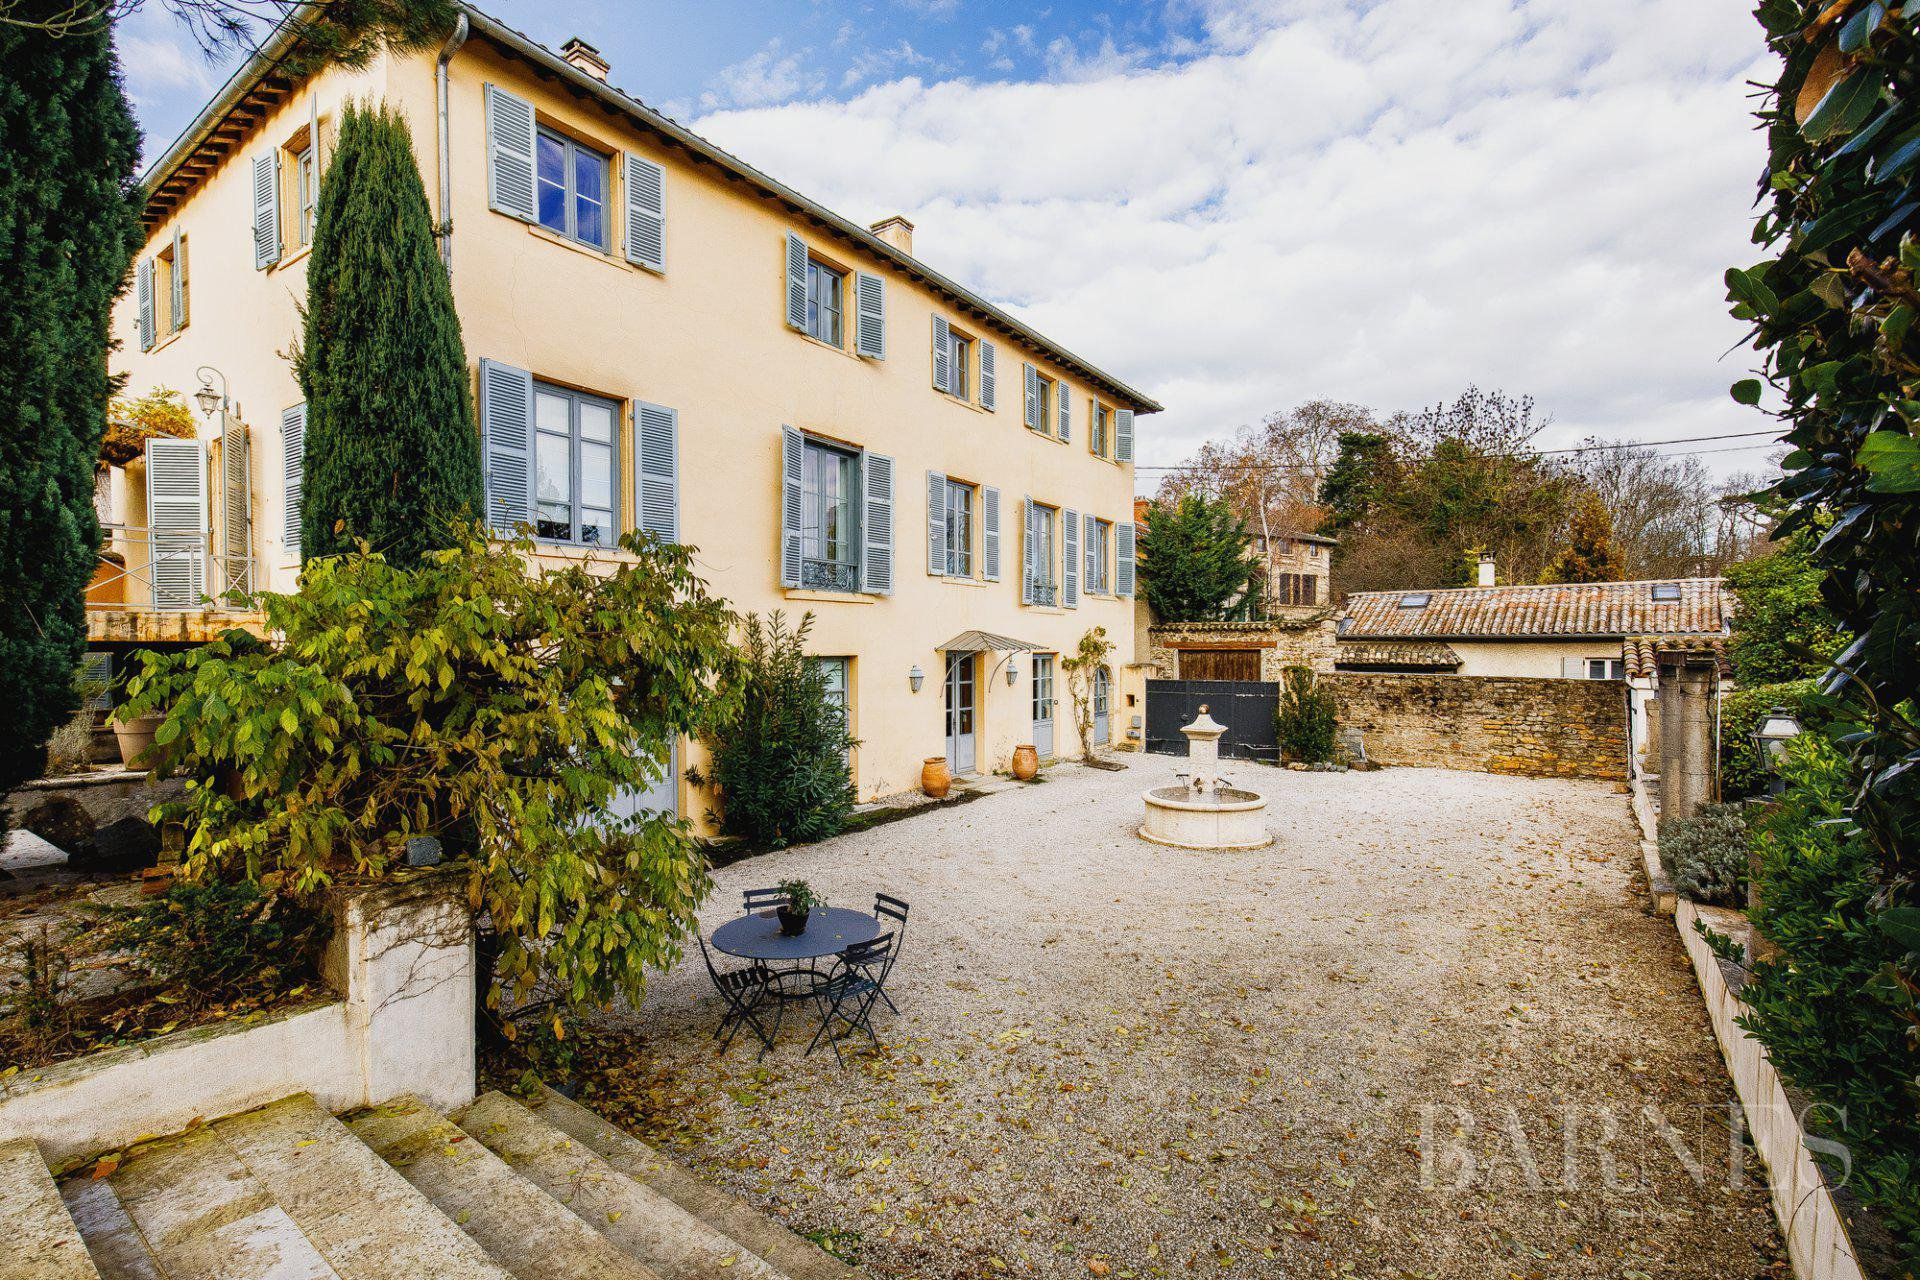 Ecully - Property of 500 sqm - Land of 2000 sqm - 5 bedrooms